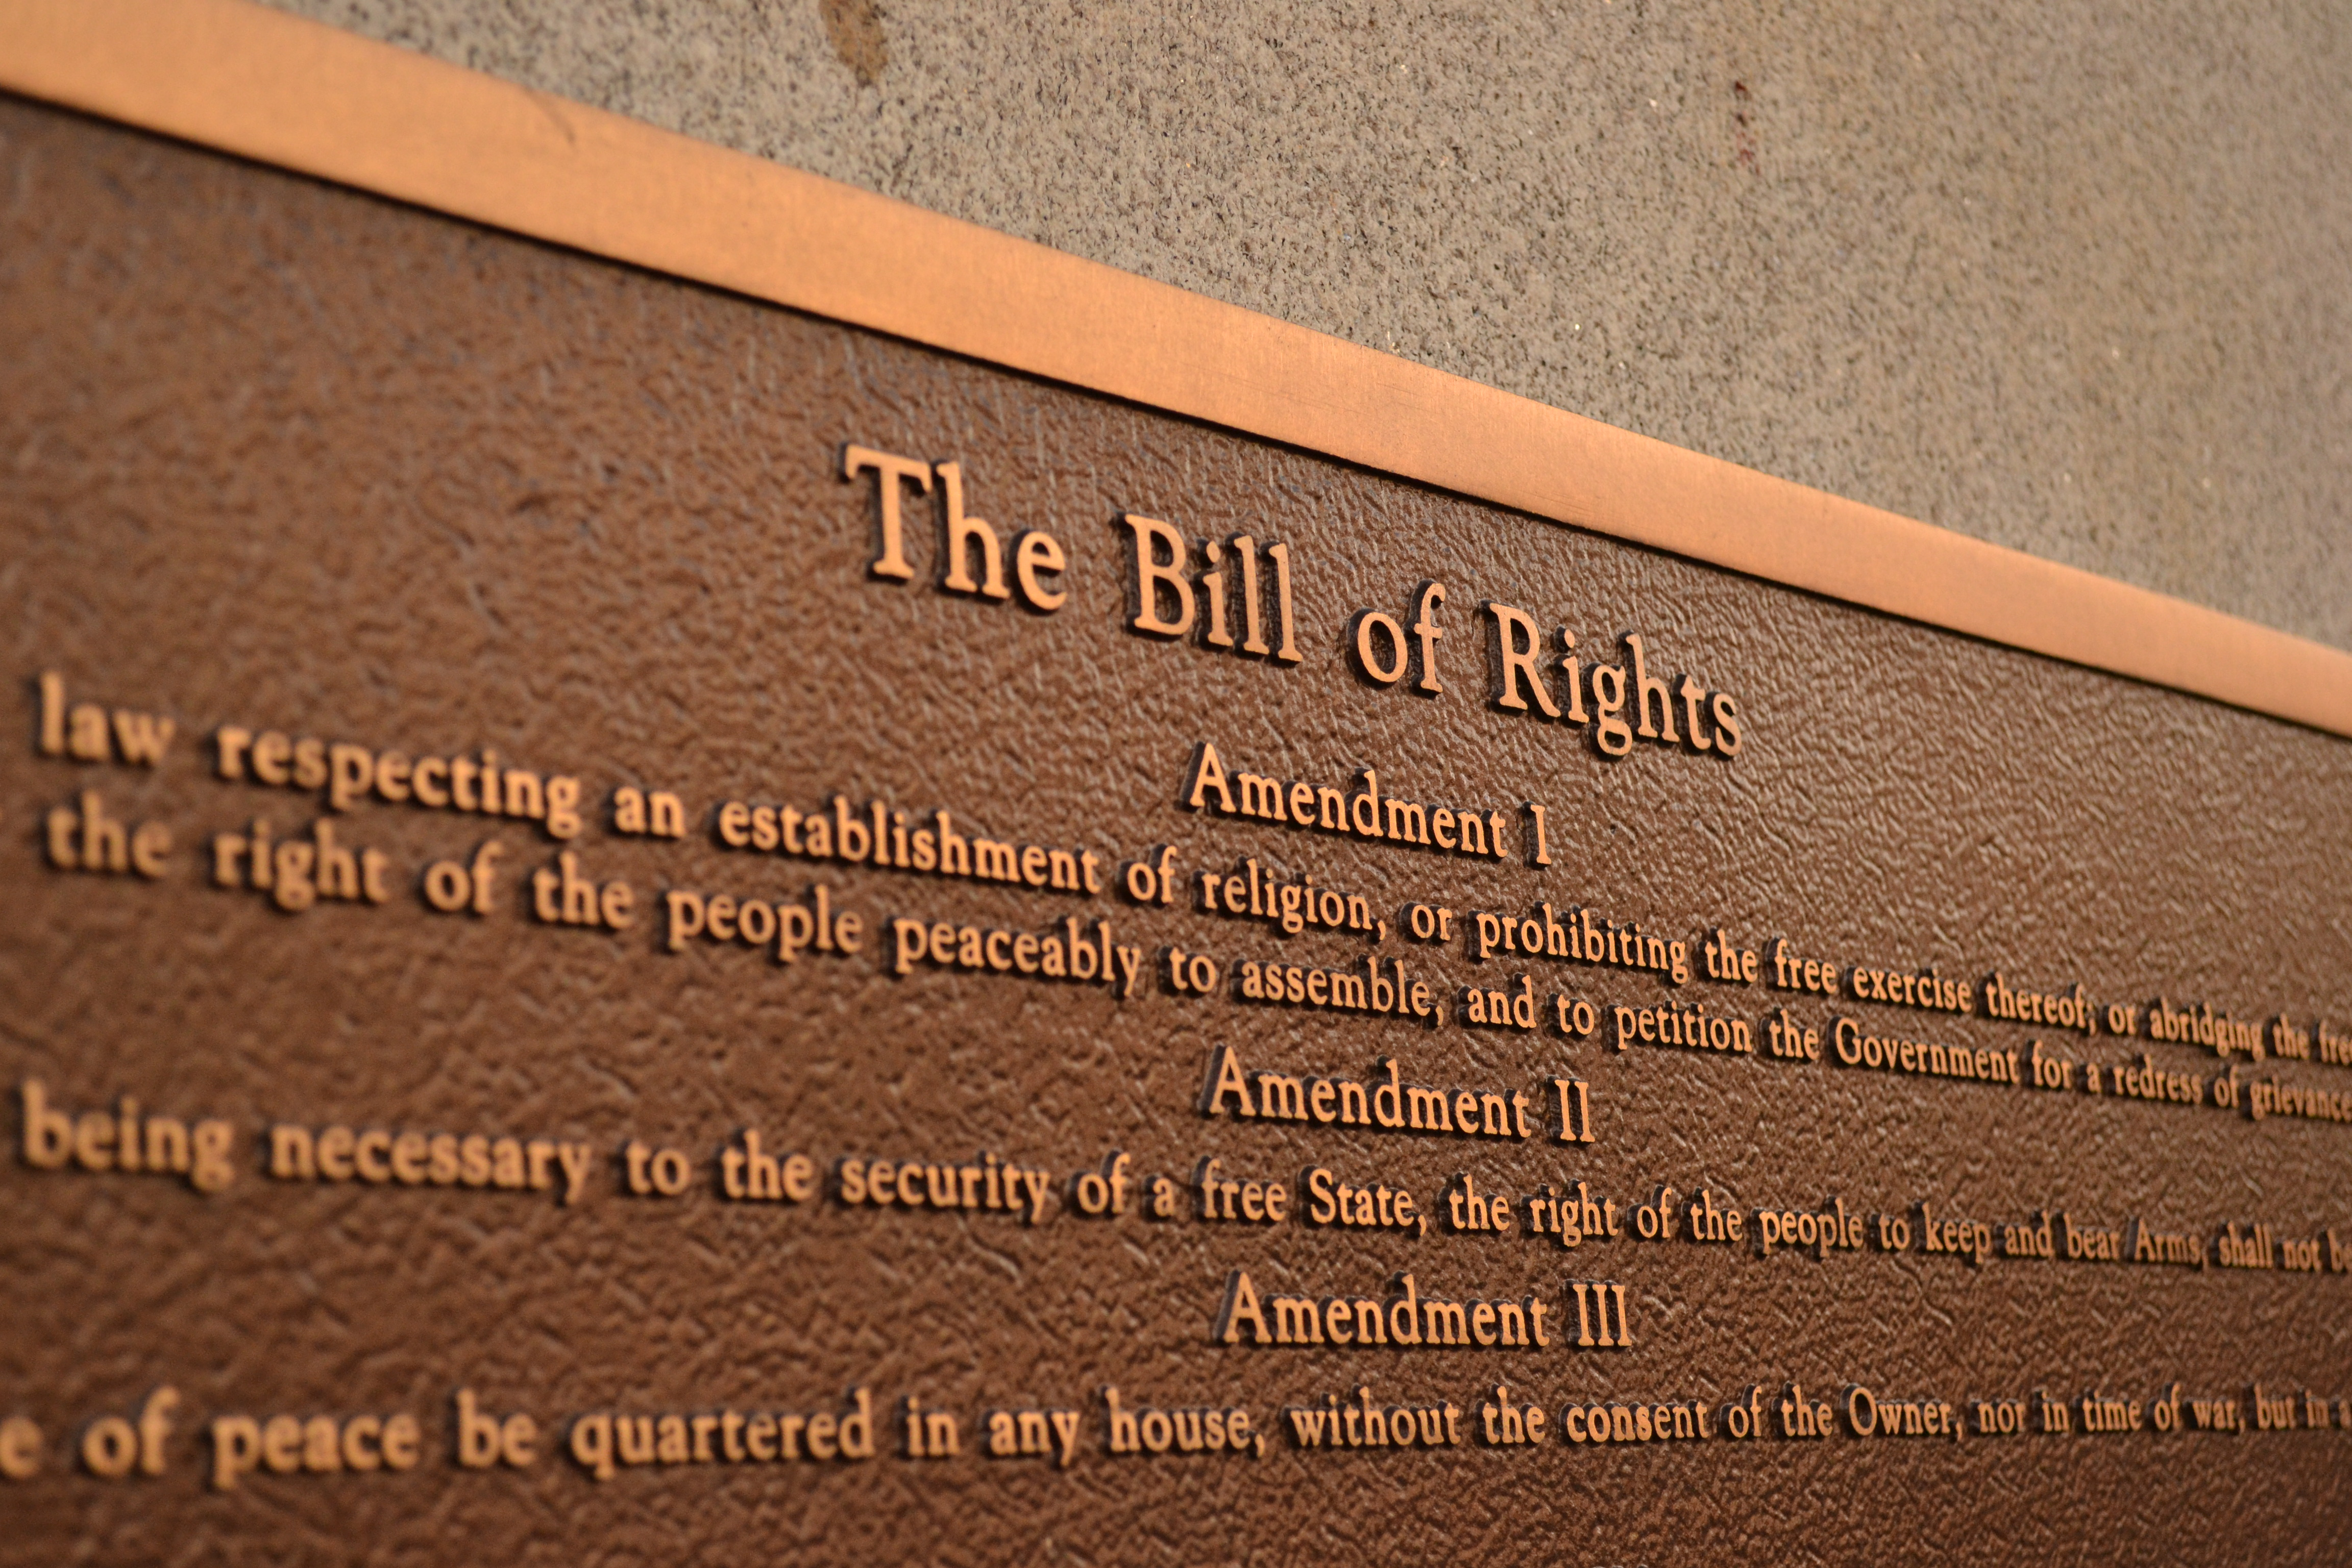 Tar Heel Inaction And The Bill Of Rights